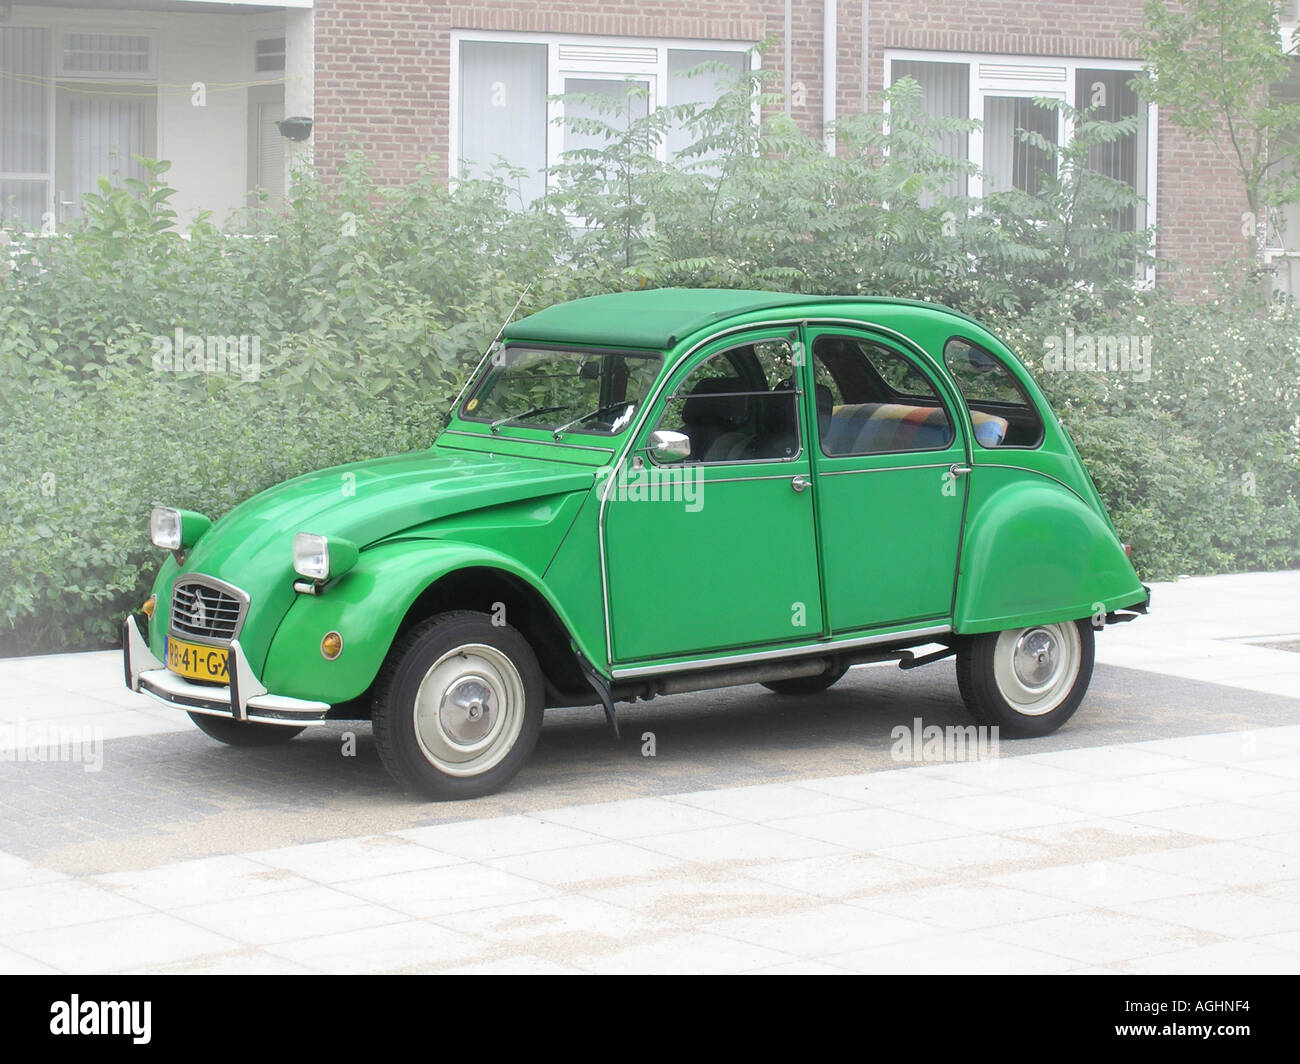 green citroen deux chevaux parked by roadside stock photo royalty free image 4641267 alamy. Black Bedroom Furniture Sets. Home Design Ideas